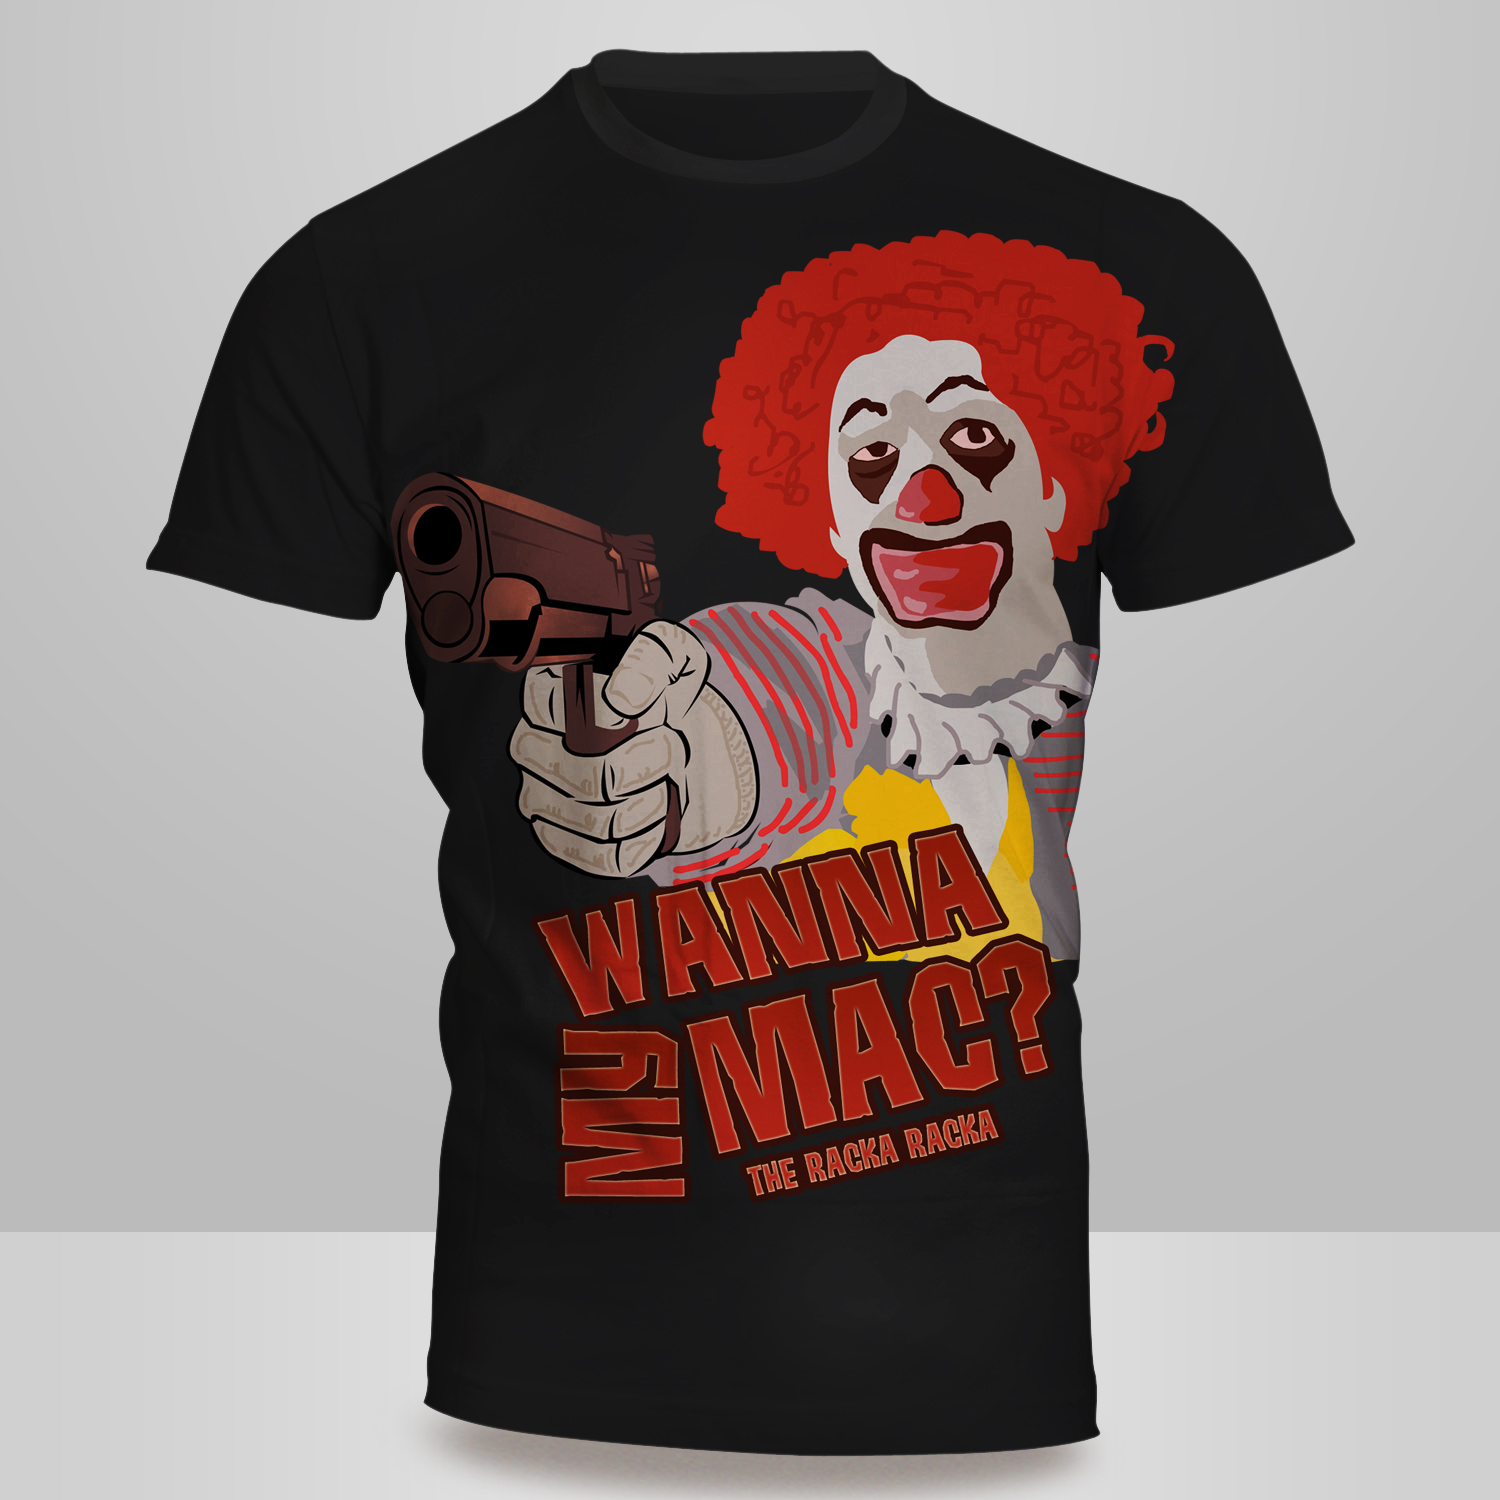 Design t shirt youtube - T Shirt Design By Kero For Rackaracka Large Youtube Channel Needs T Shirt